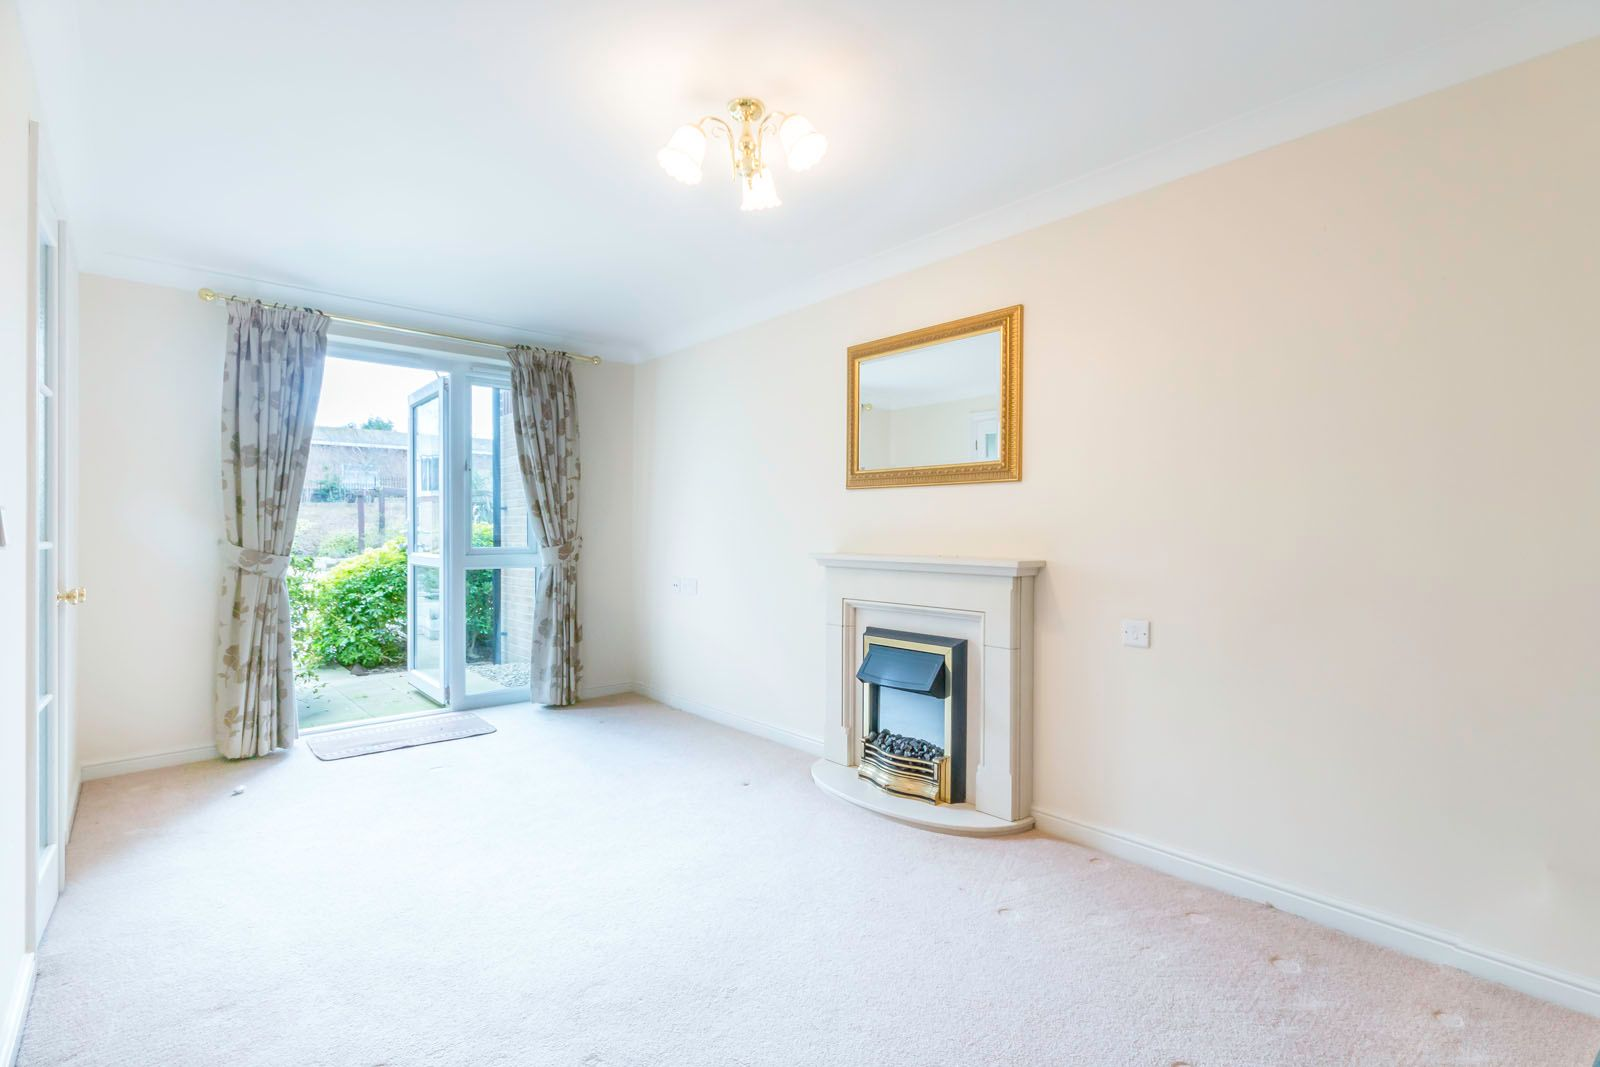 1 bed for sale in East Preston - Photo 4 (Property Image 2)